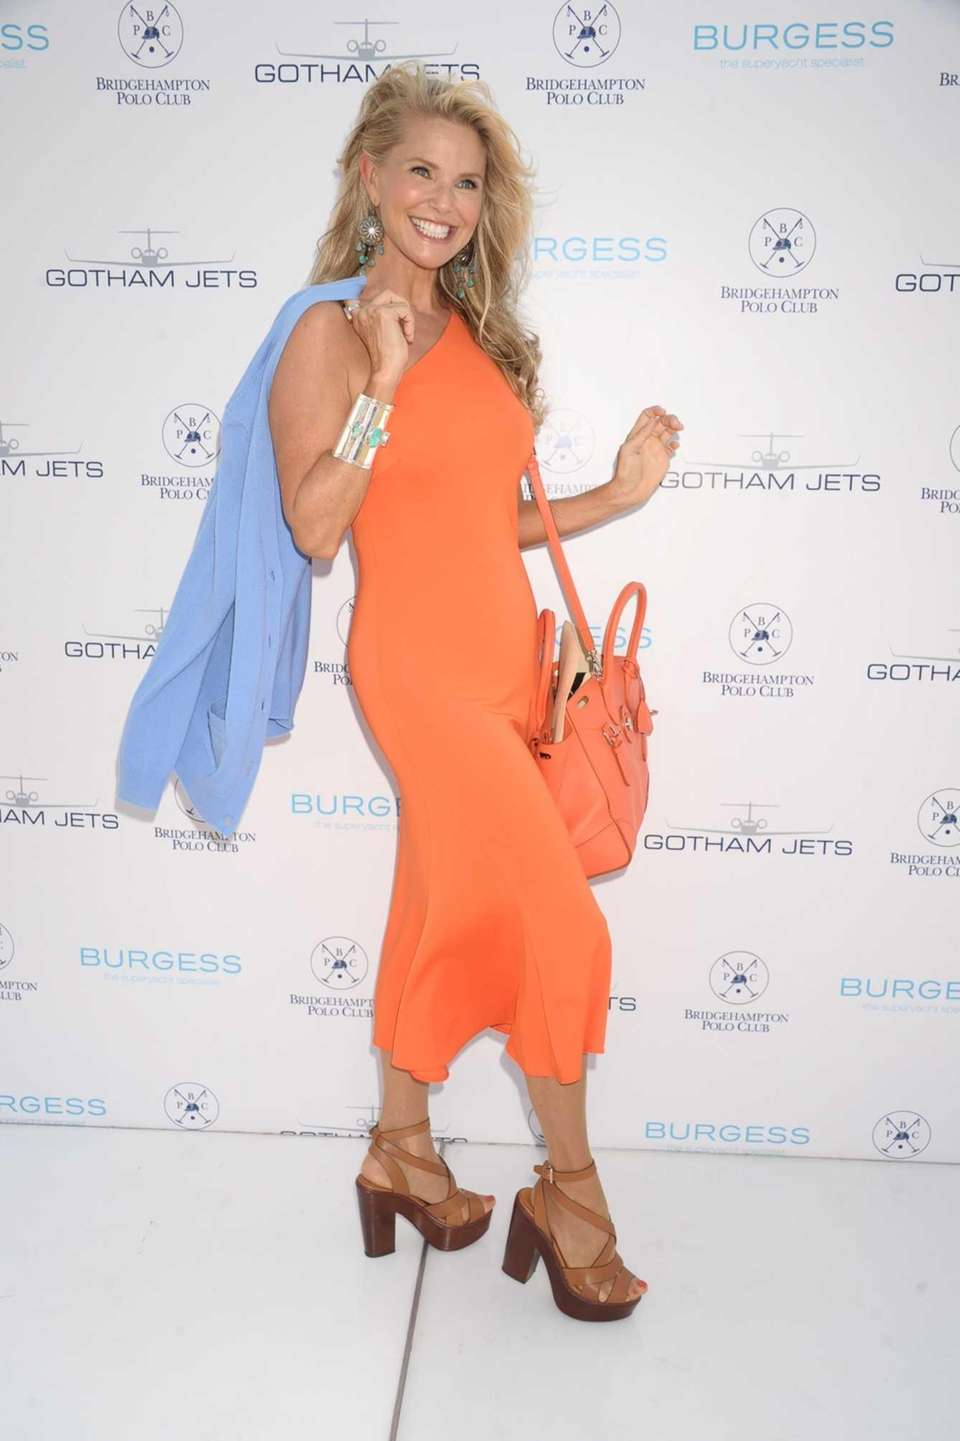 Christie Brinkley attends the 17th Annual Bridgehampton Polo